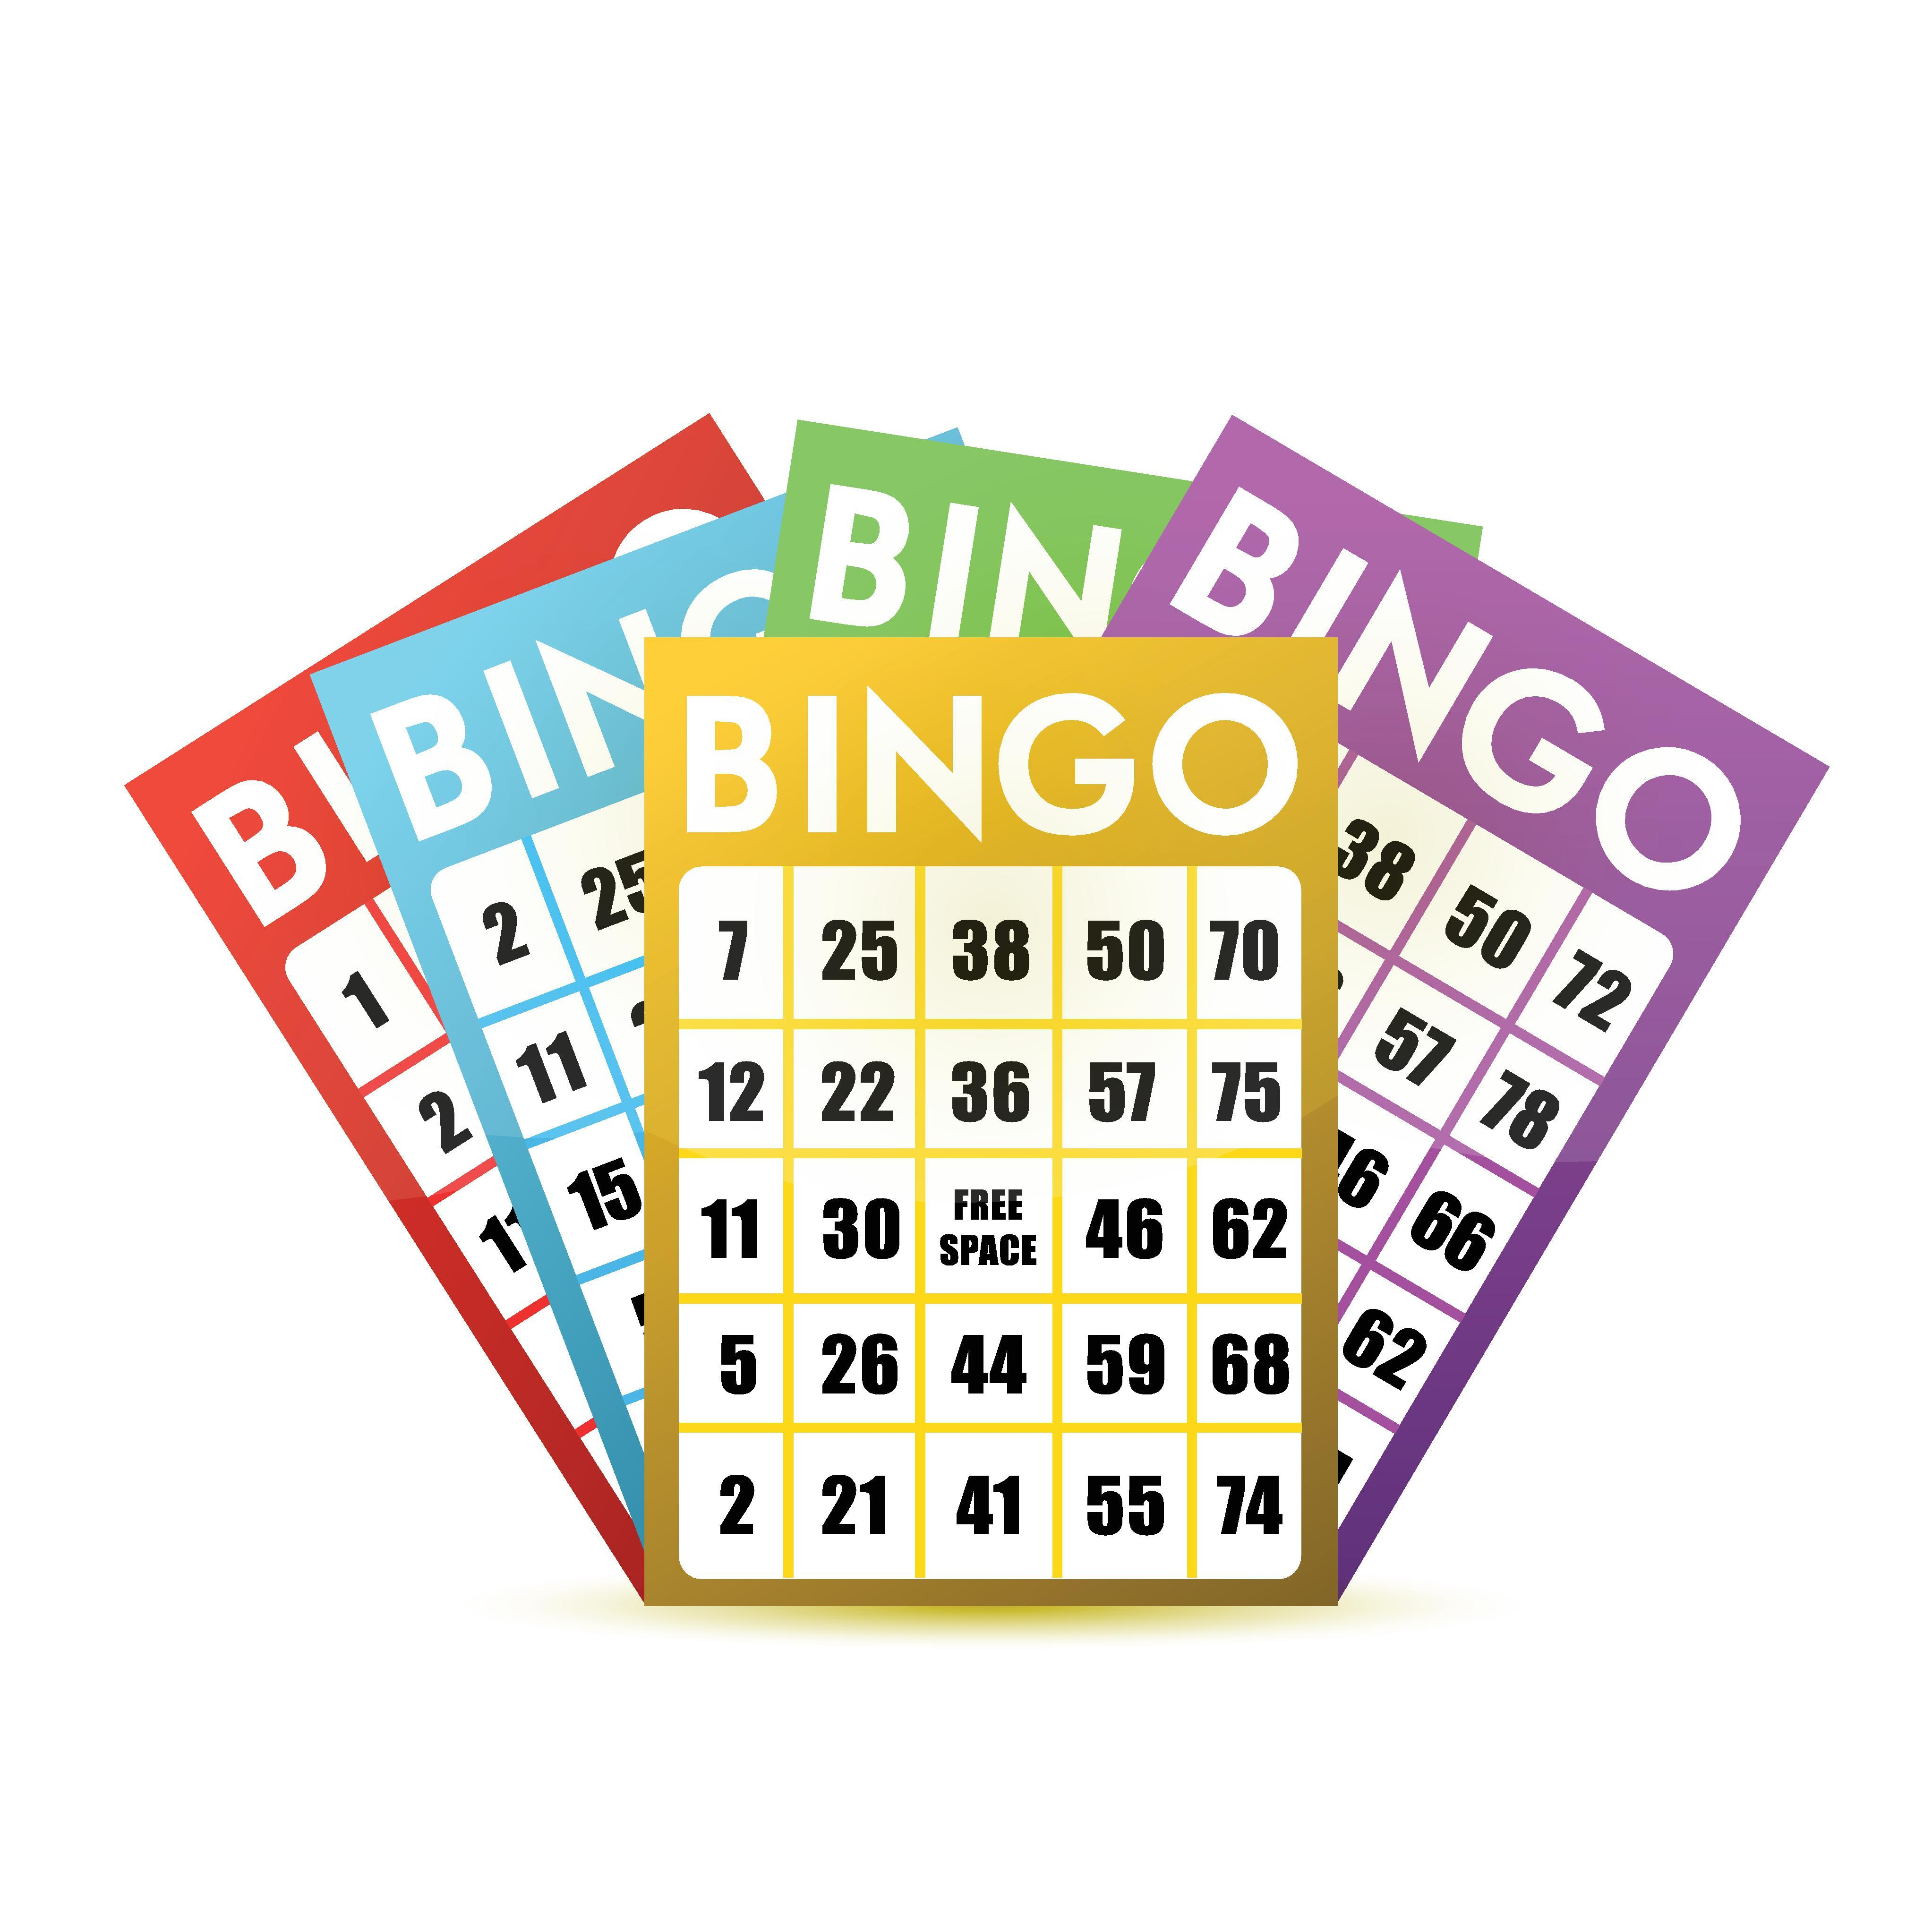 Seattle encourages summer reading with a book bingo game » MobyLives.